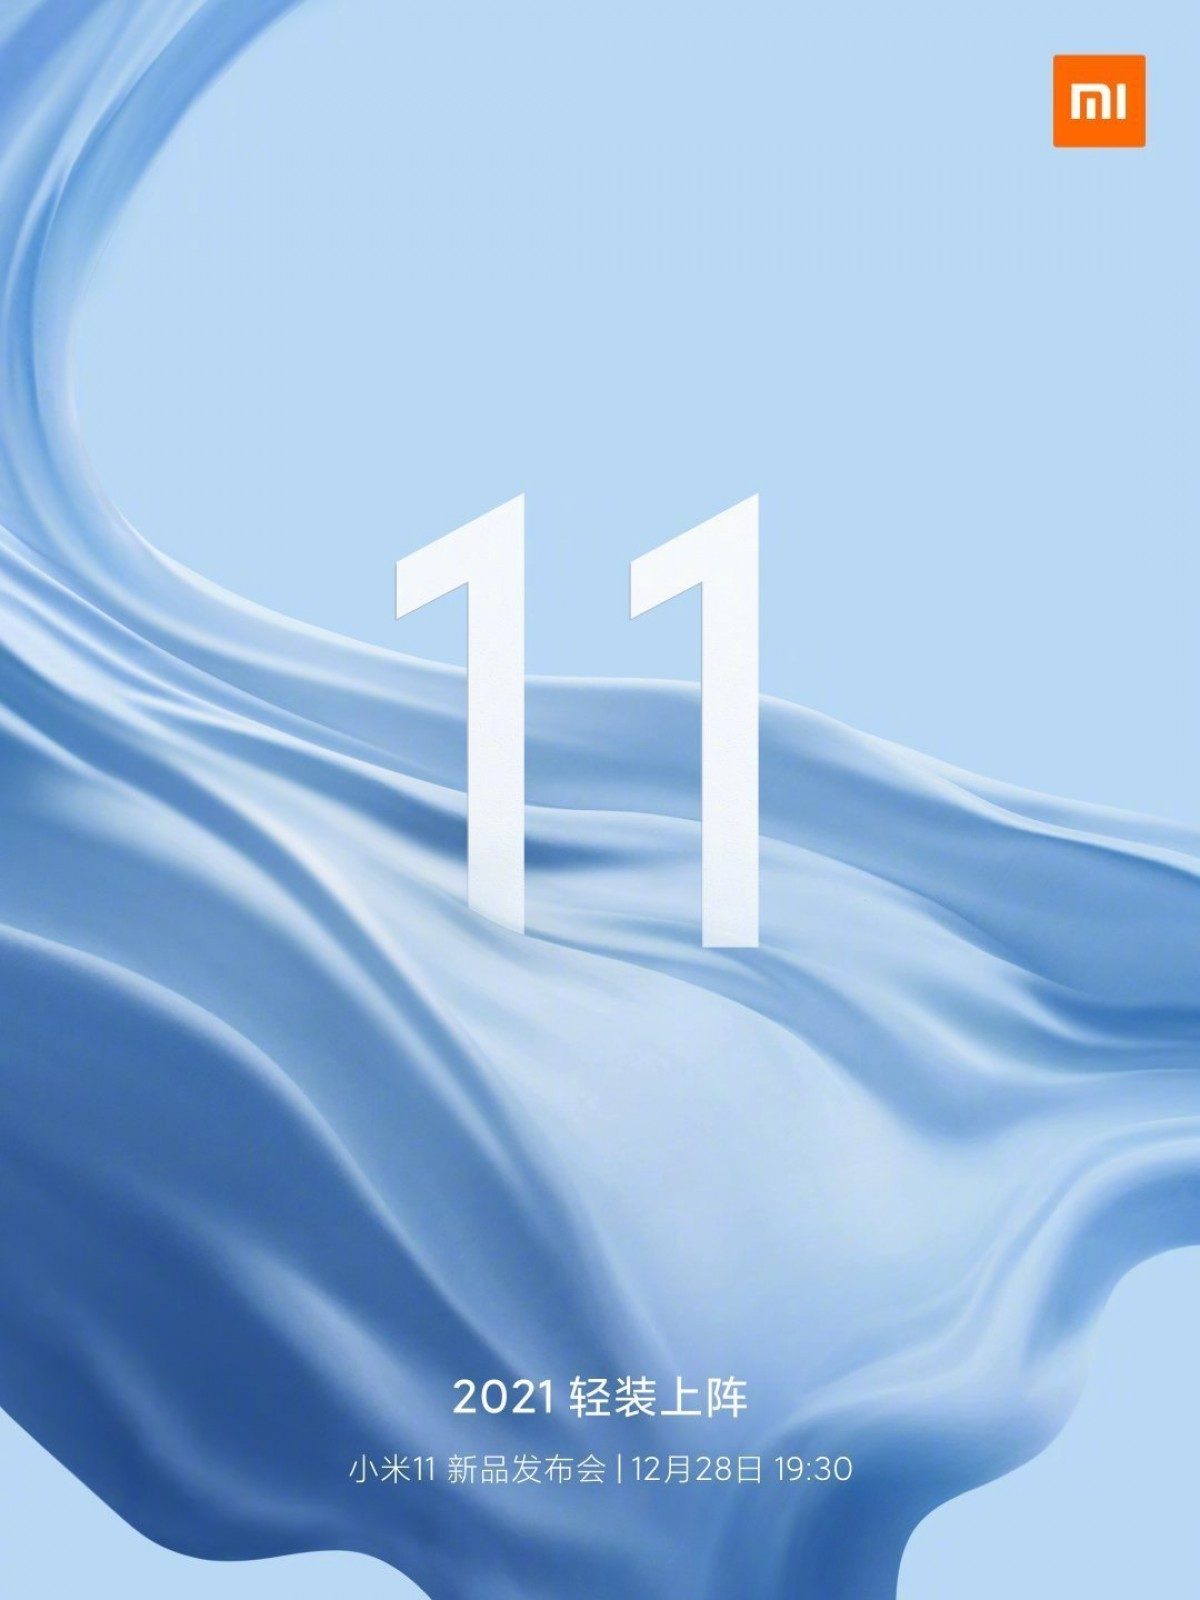 Xiaomi Mi 11 officially arriving on December 28